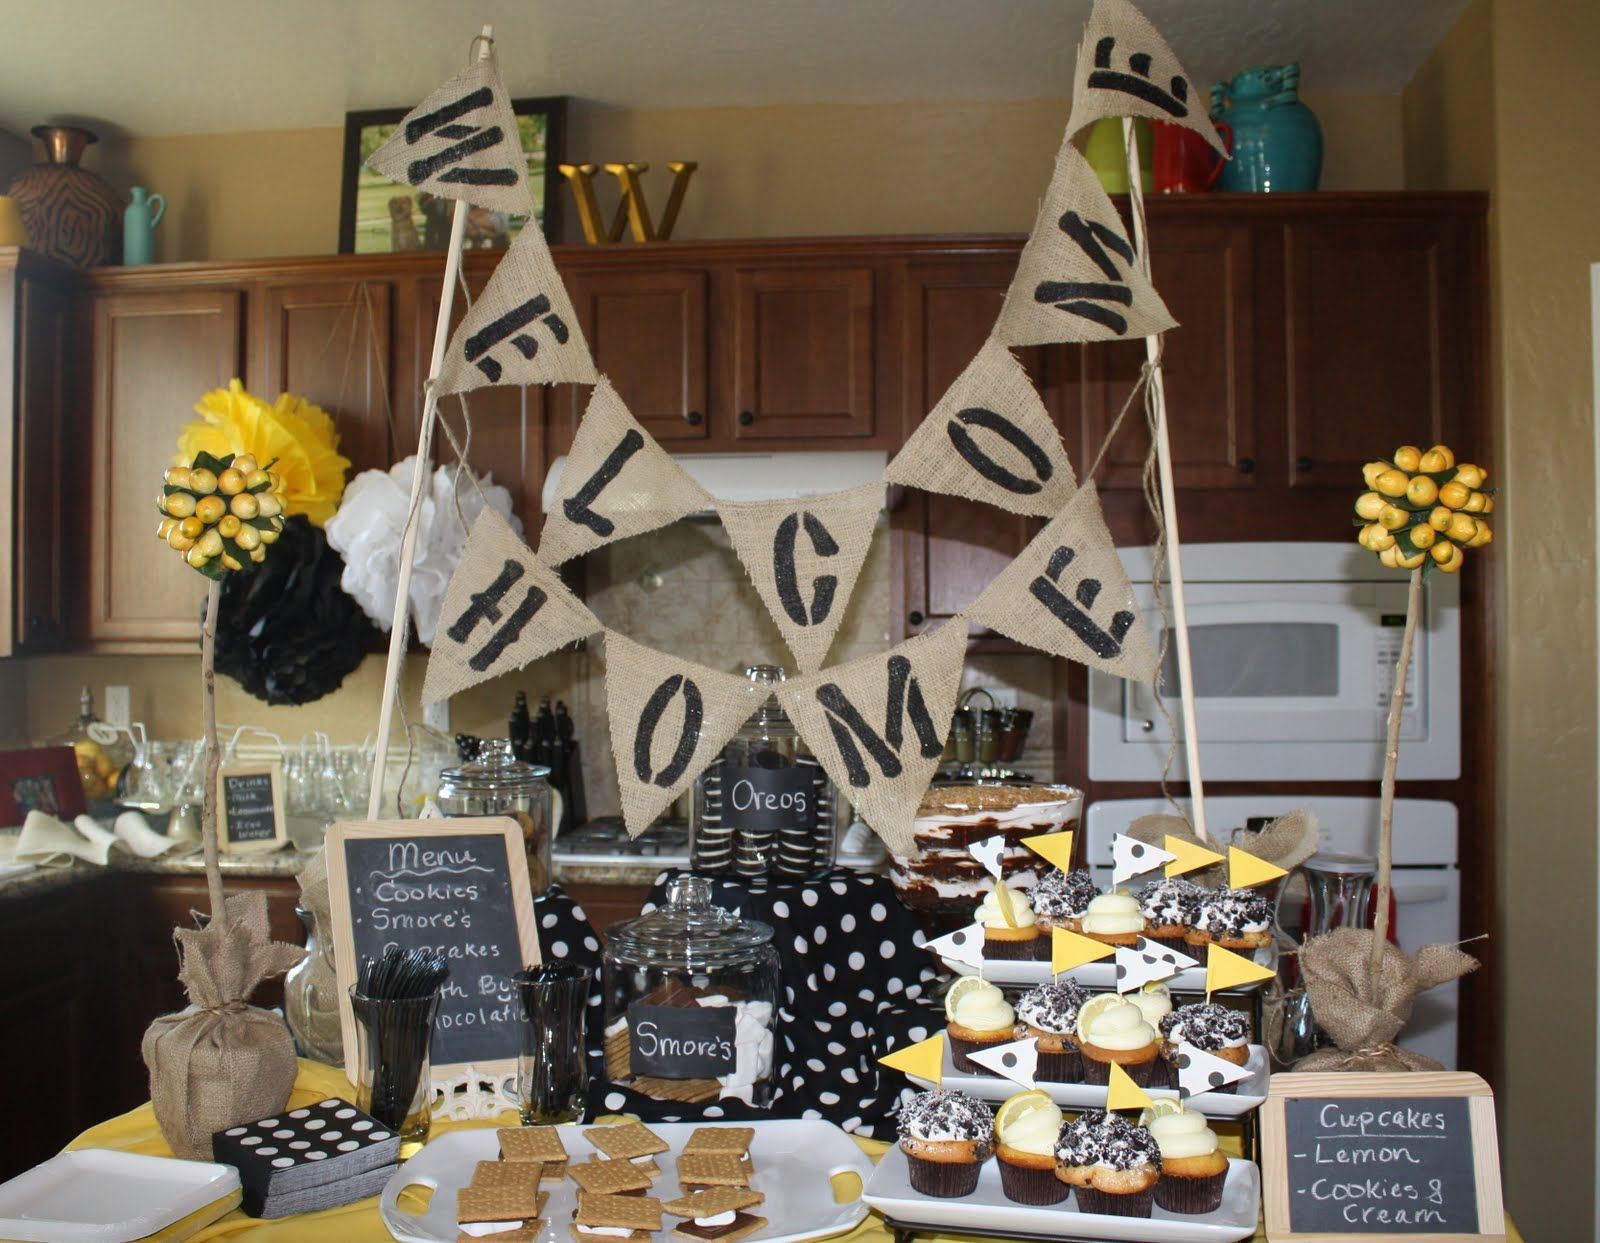 Welcome home party ideas how sweet it is also great parties rh in pinterest